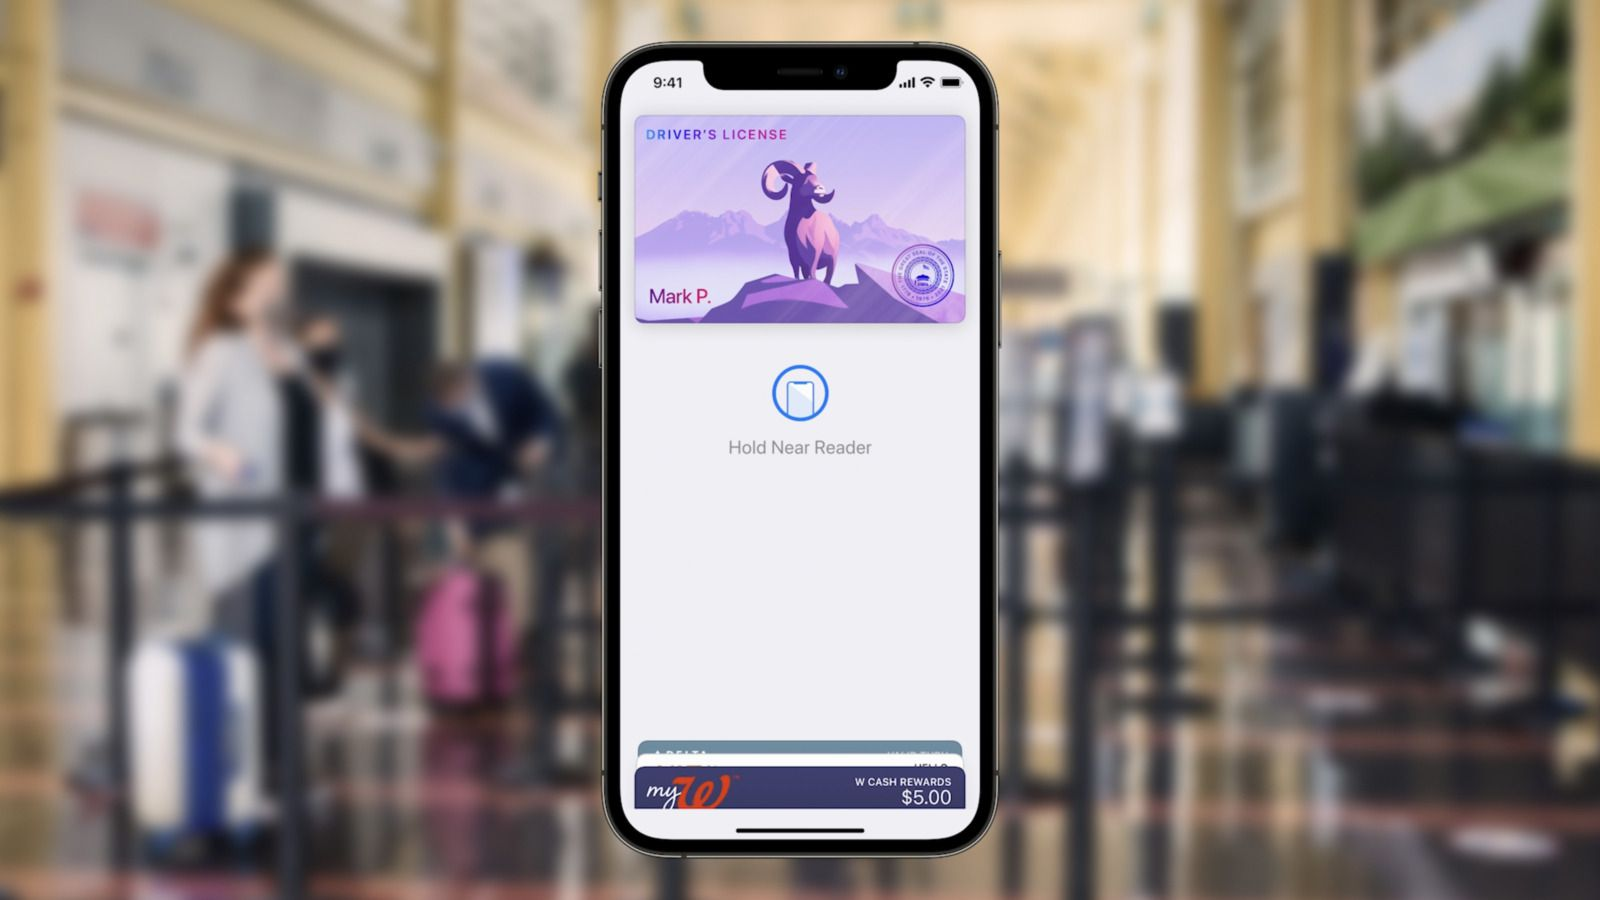 You'll Be Able to Add Your Driver's License to Your iPhone in Select States Starting With iOS 15